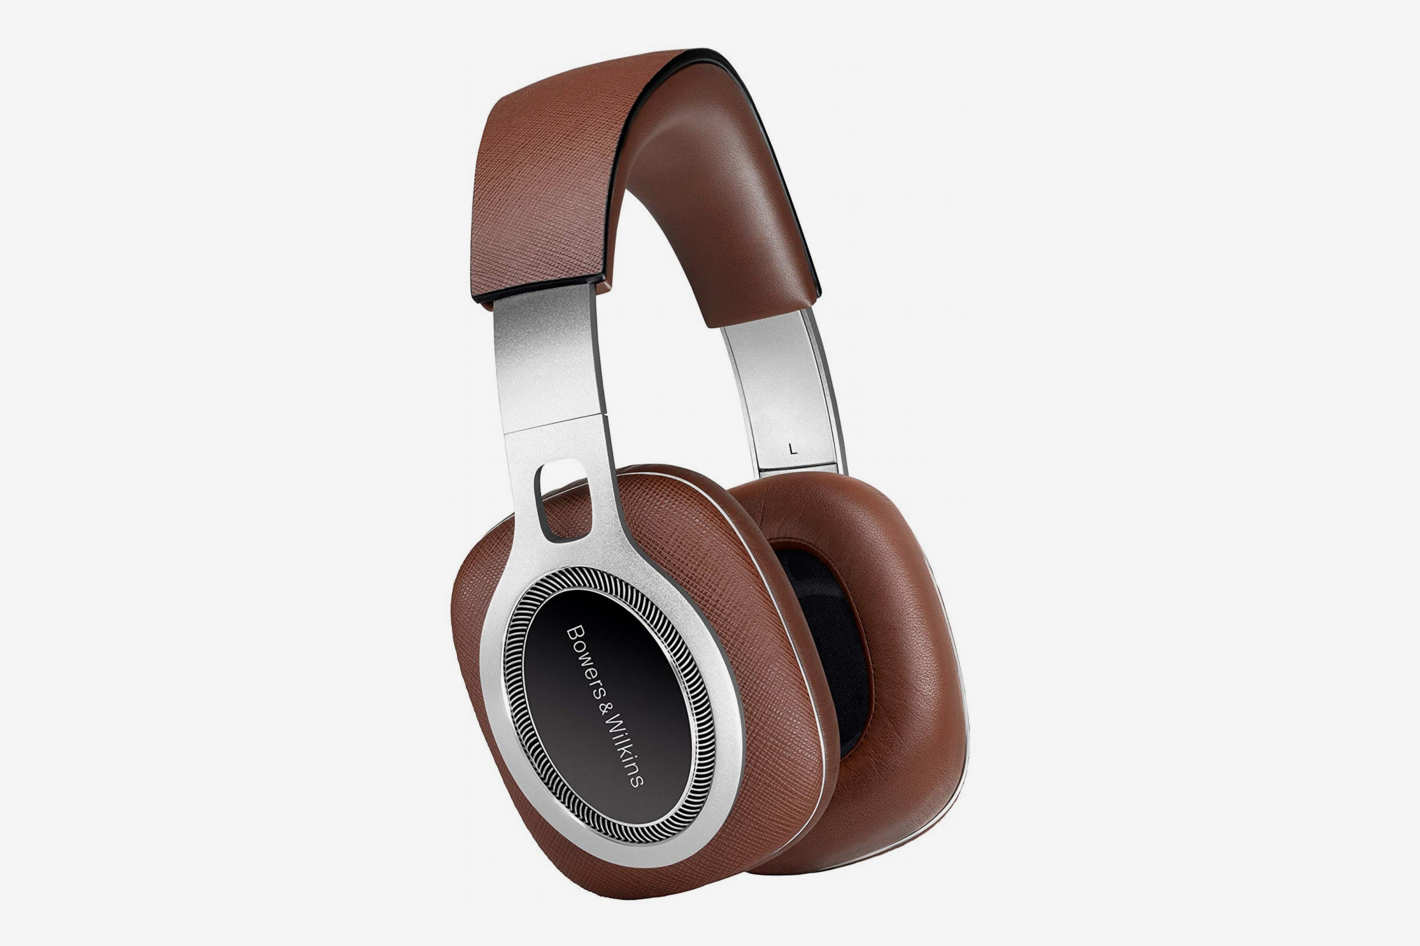 Bowers & Wilkins P9 Signature HiFi Over Ear Headphones